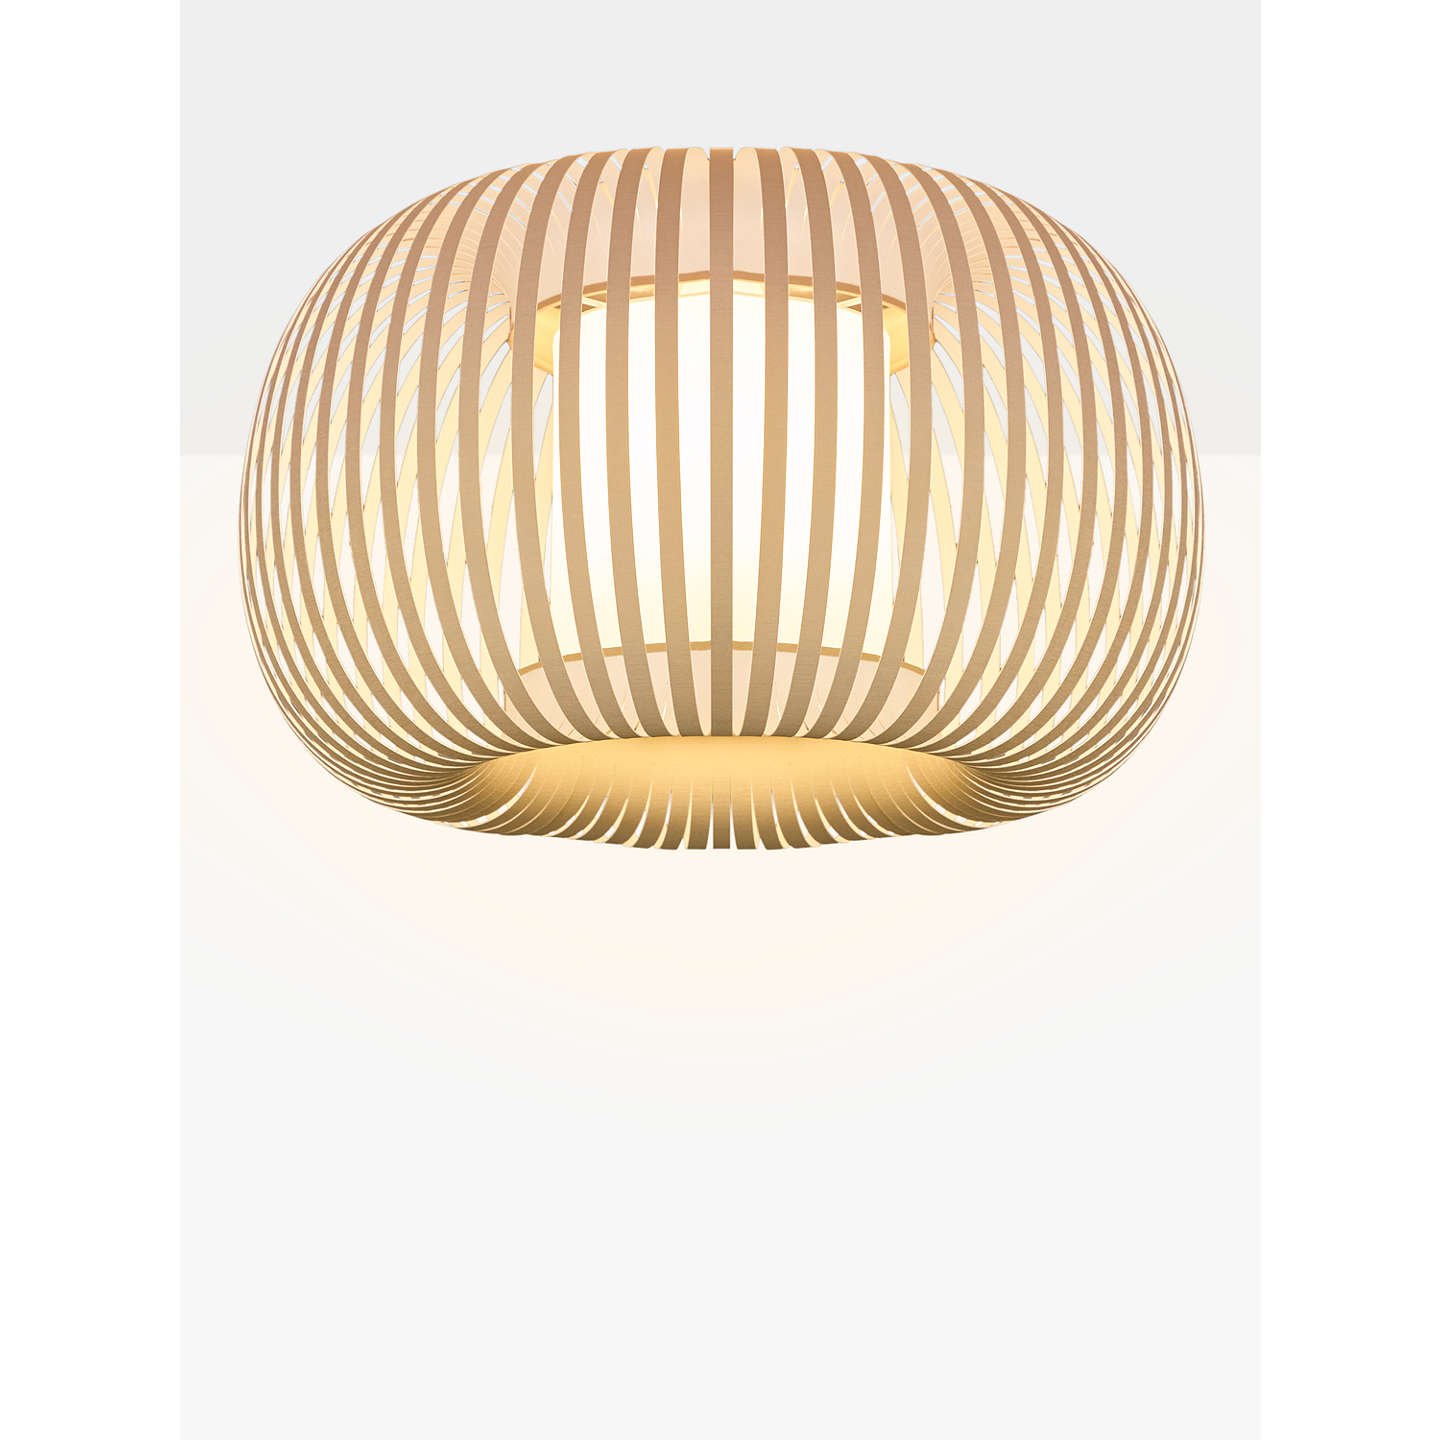 John lewis harmony ribbon semi flush ceiling light natural at john buyjohn lewis harmony ribbon semi flush ceiling light natural online at johnlewis aloadofball Images